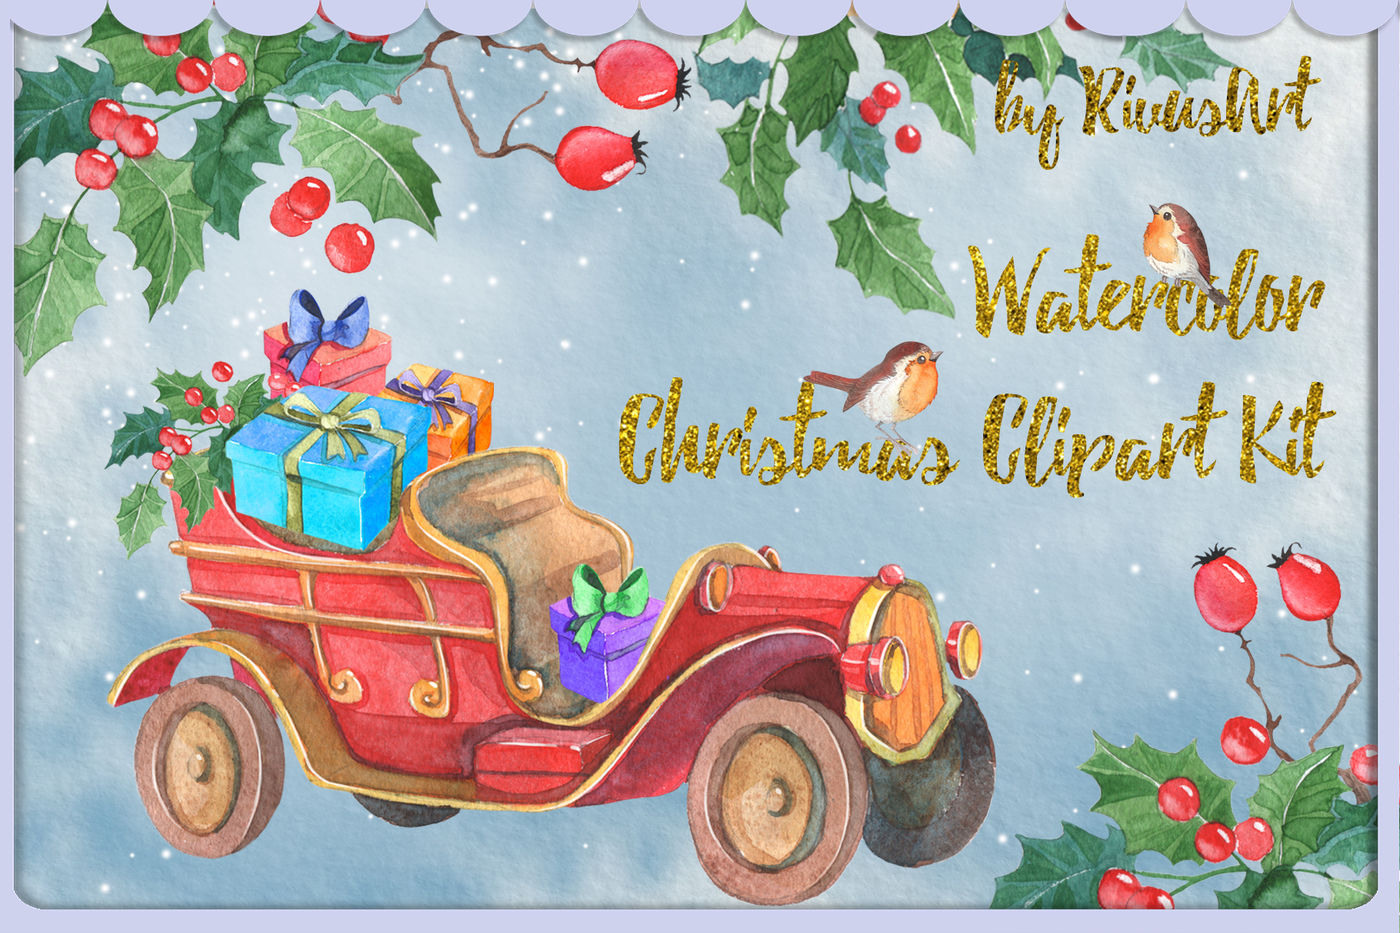 Vingage cards and gifts clipart clip royalty free Christmas watercolor clipart vintage car with gifts and ... clip royalty free